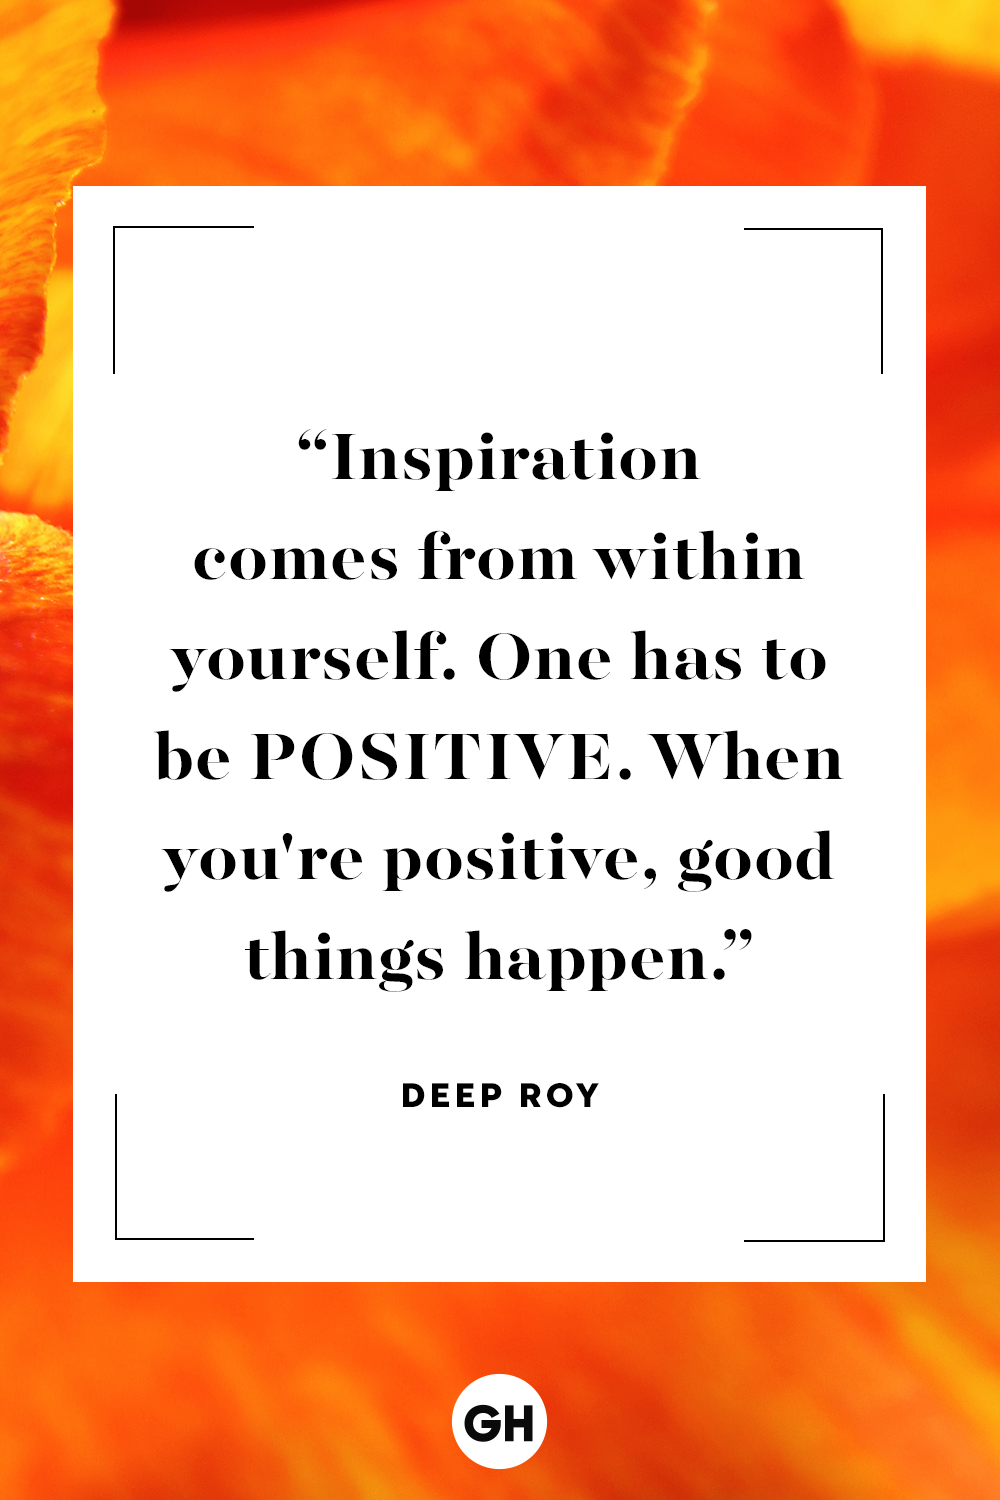 50 Short Inspirational Quotes We Love - Best Positive